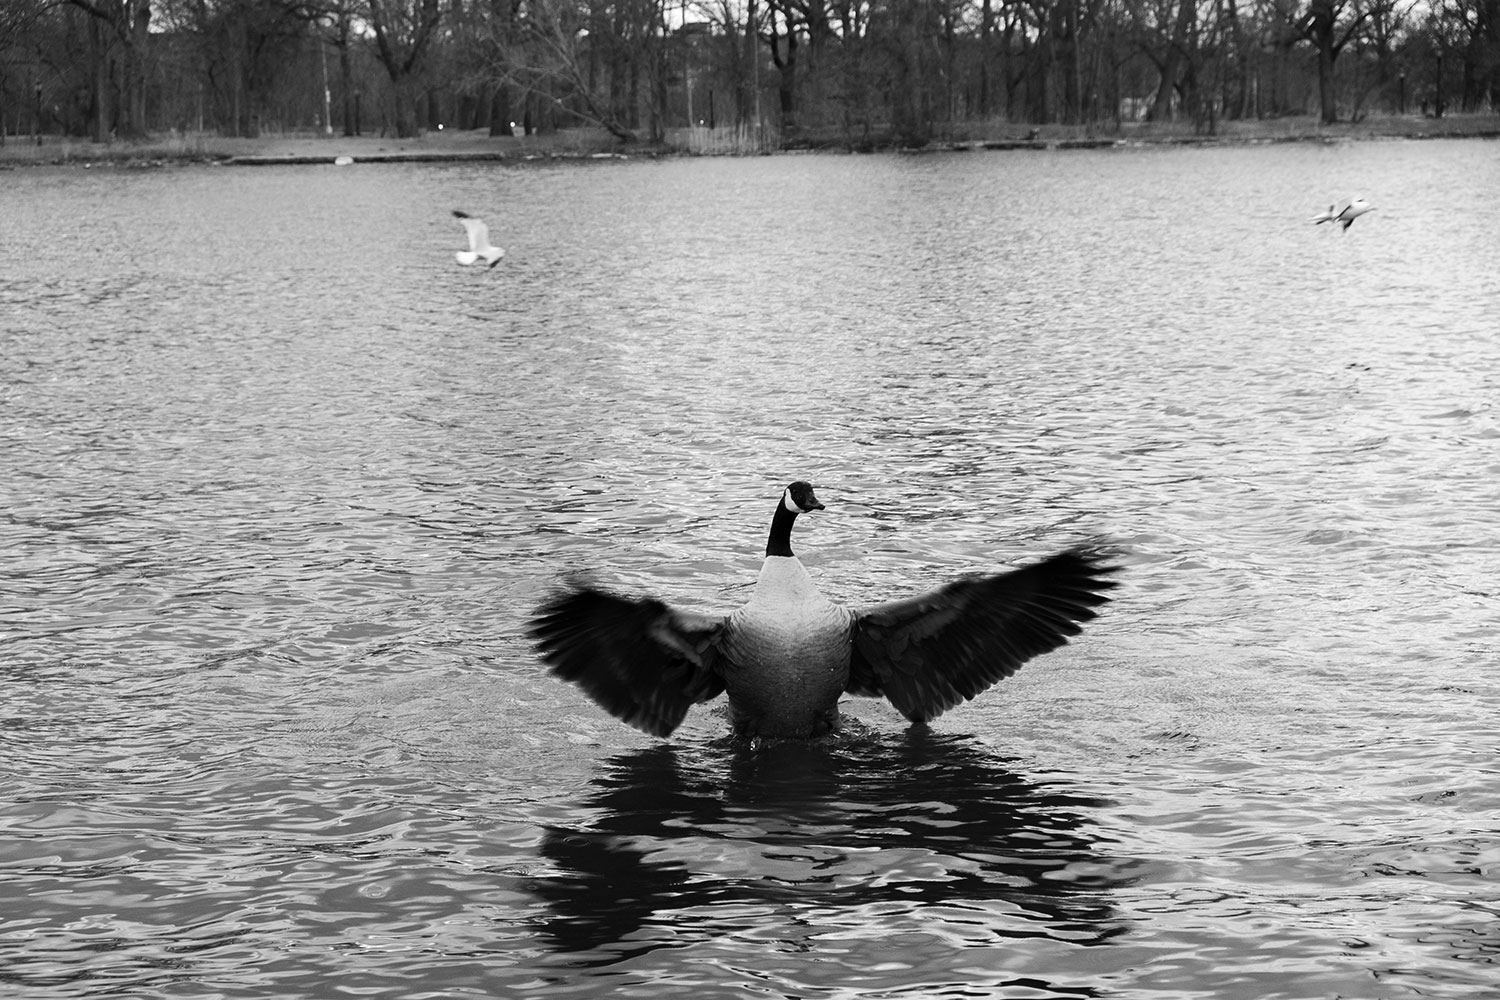 a goose flaps its wings